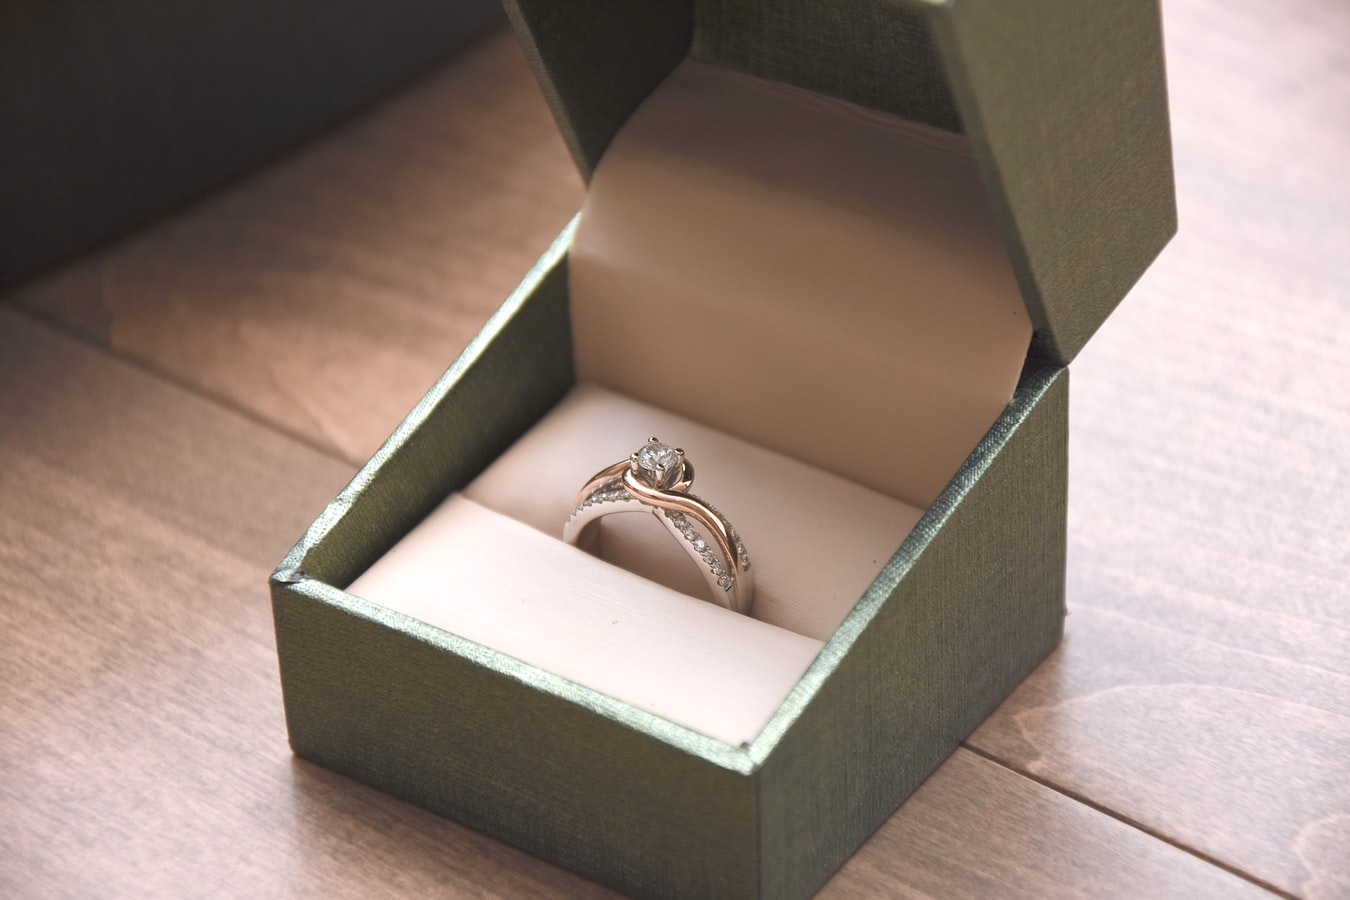 ring in a box